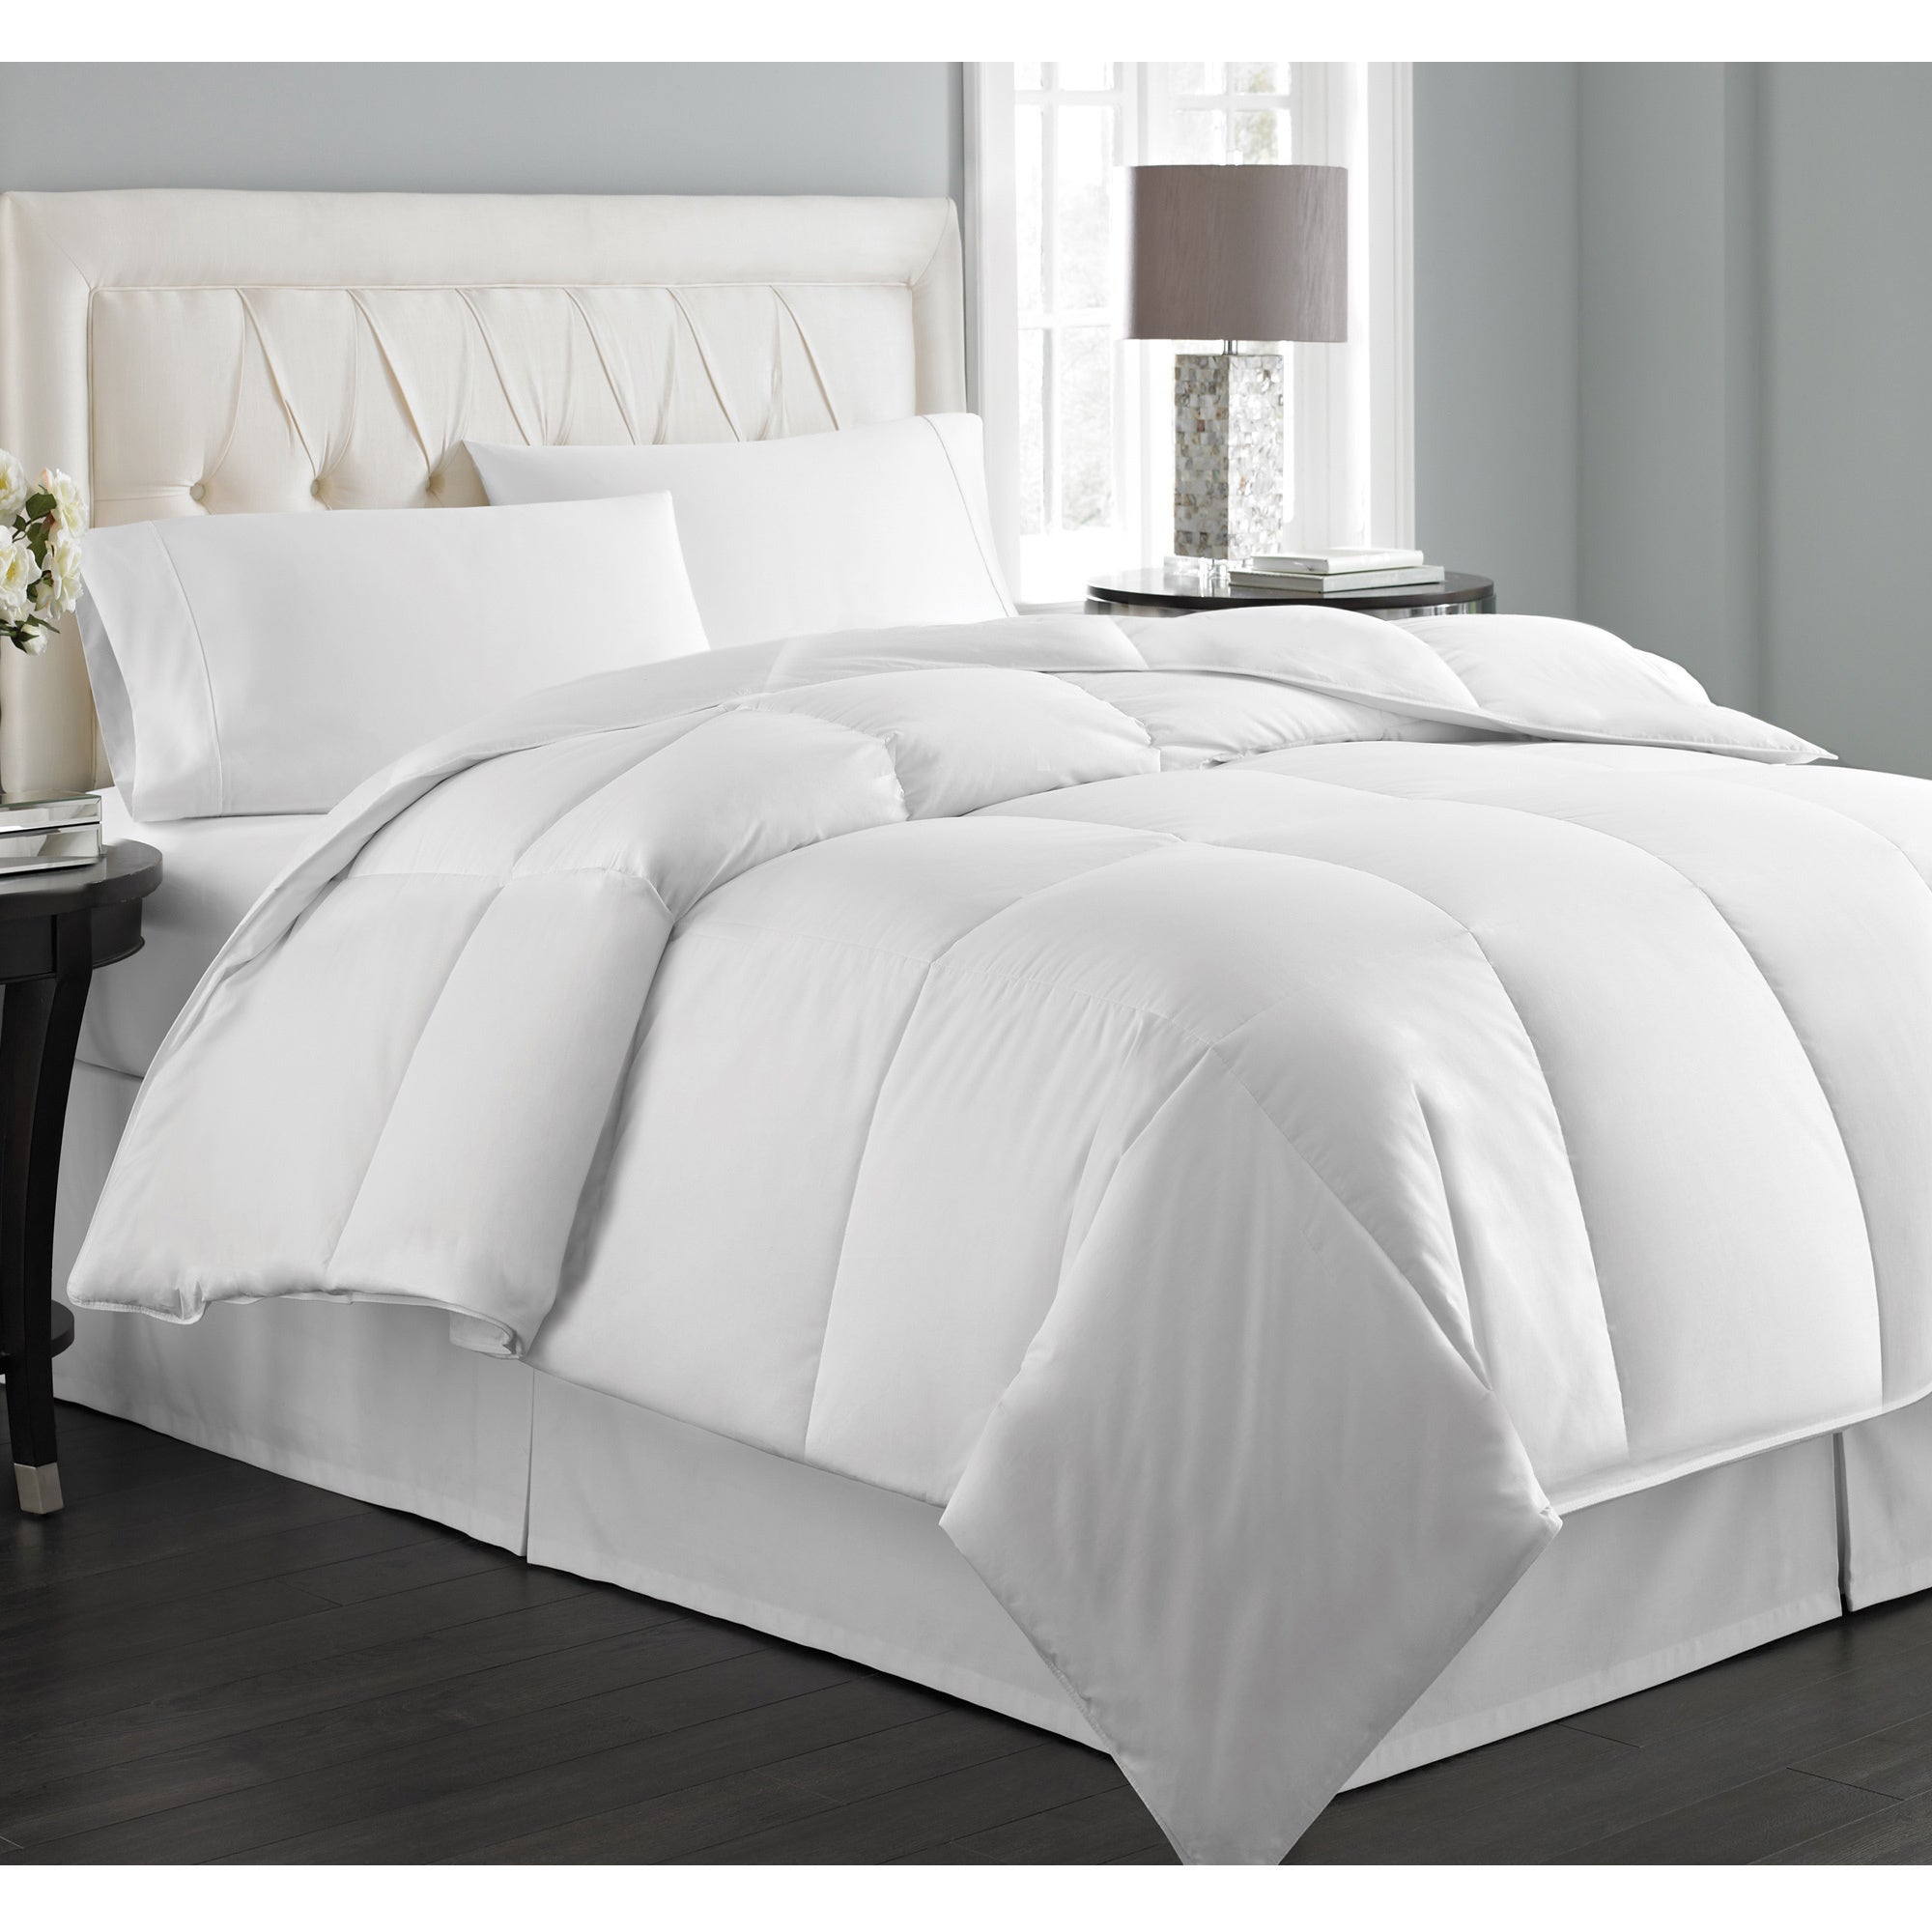 a bedspread best bedding discover summer color choosing when the com for guides bedspreads colors overstock comforter